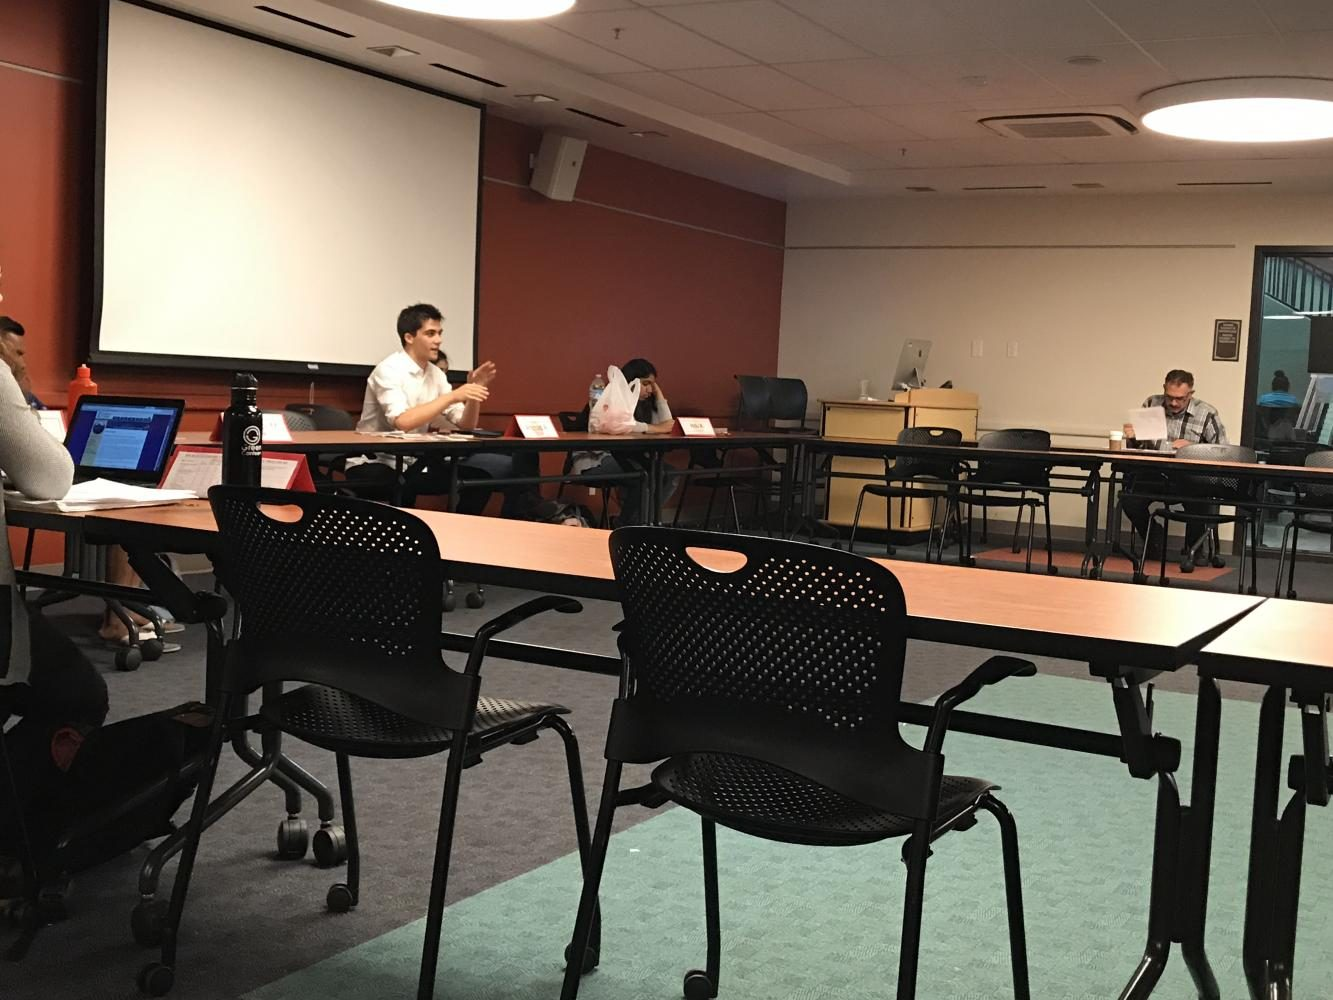 Senator Ali-Ahmad presents his research about food prices on campus at a DASB Senate meeting, and said that dining service staff said if prices do increase, it's to make it more affordable to hire more students.